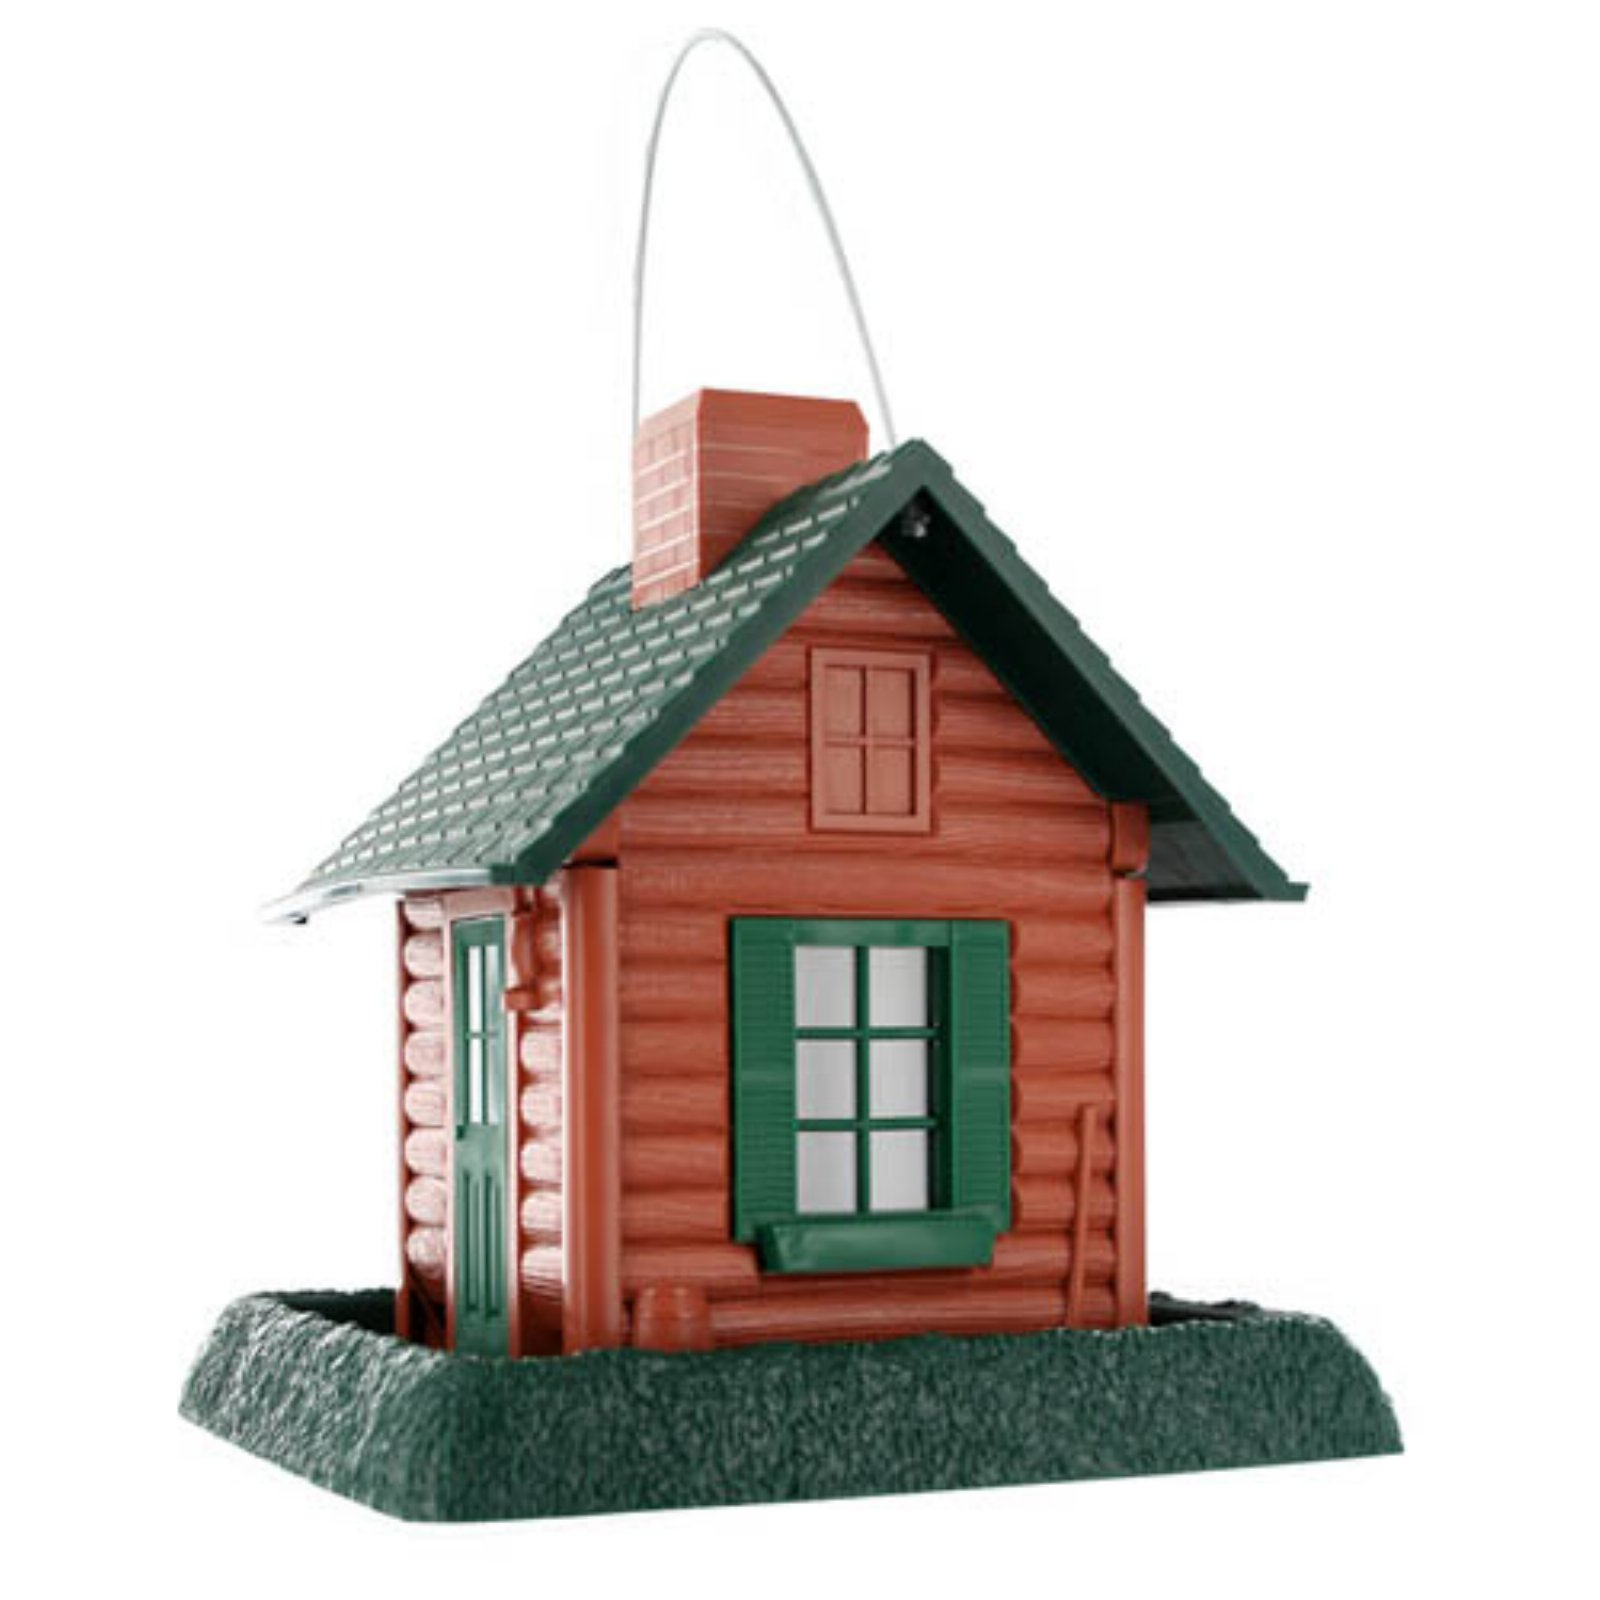 North States Log Cabin Village Collection Birdfeeder by North States